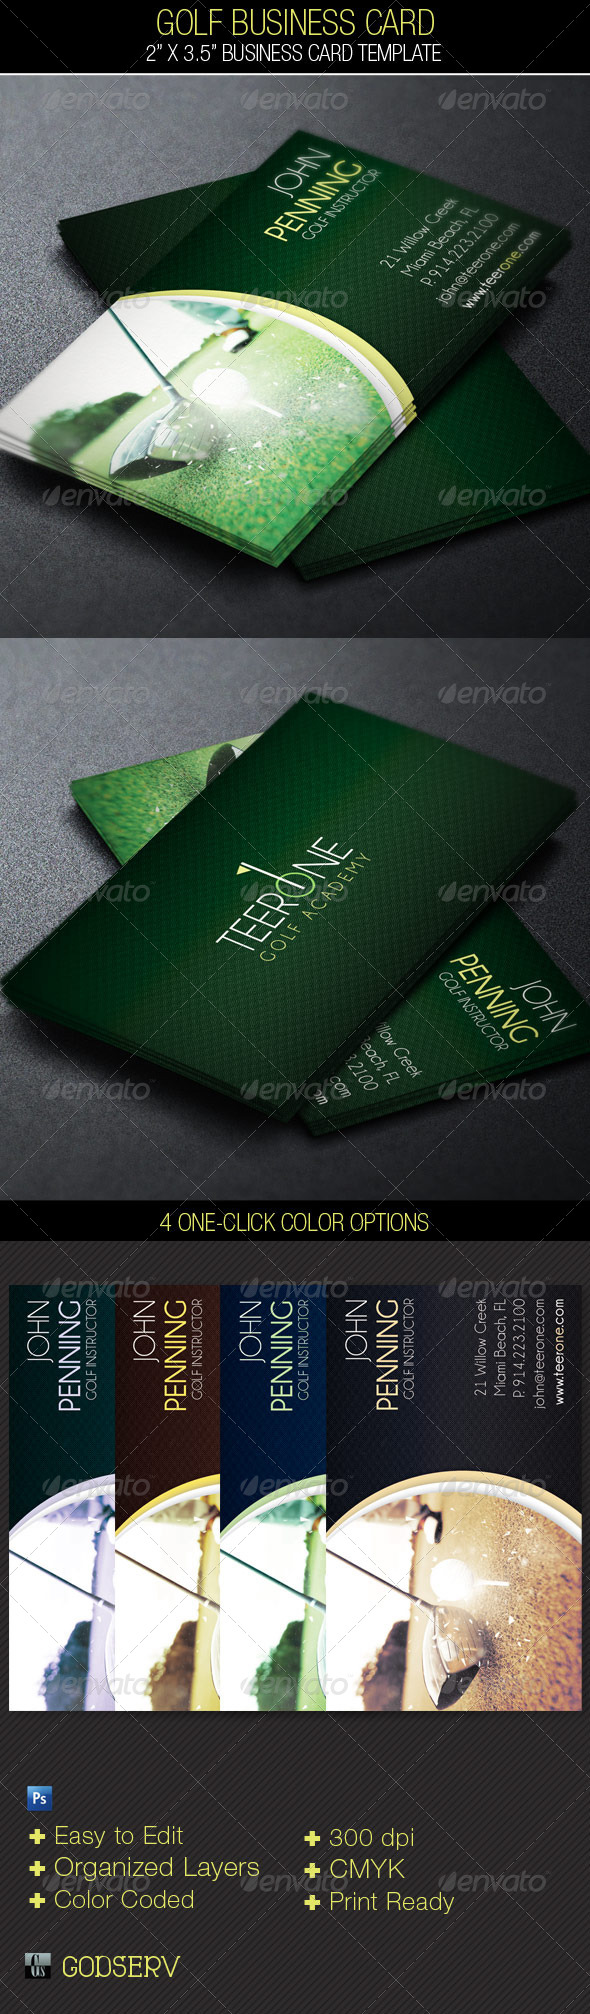 Golf Business Card Template - Industry Specific Business Cards